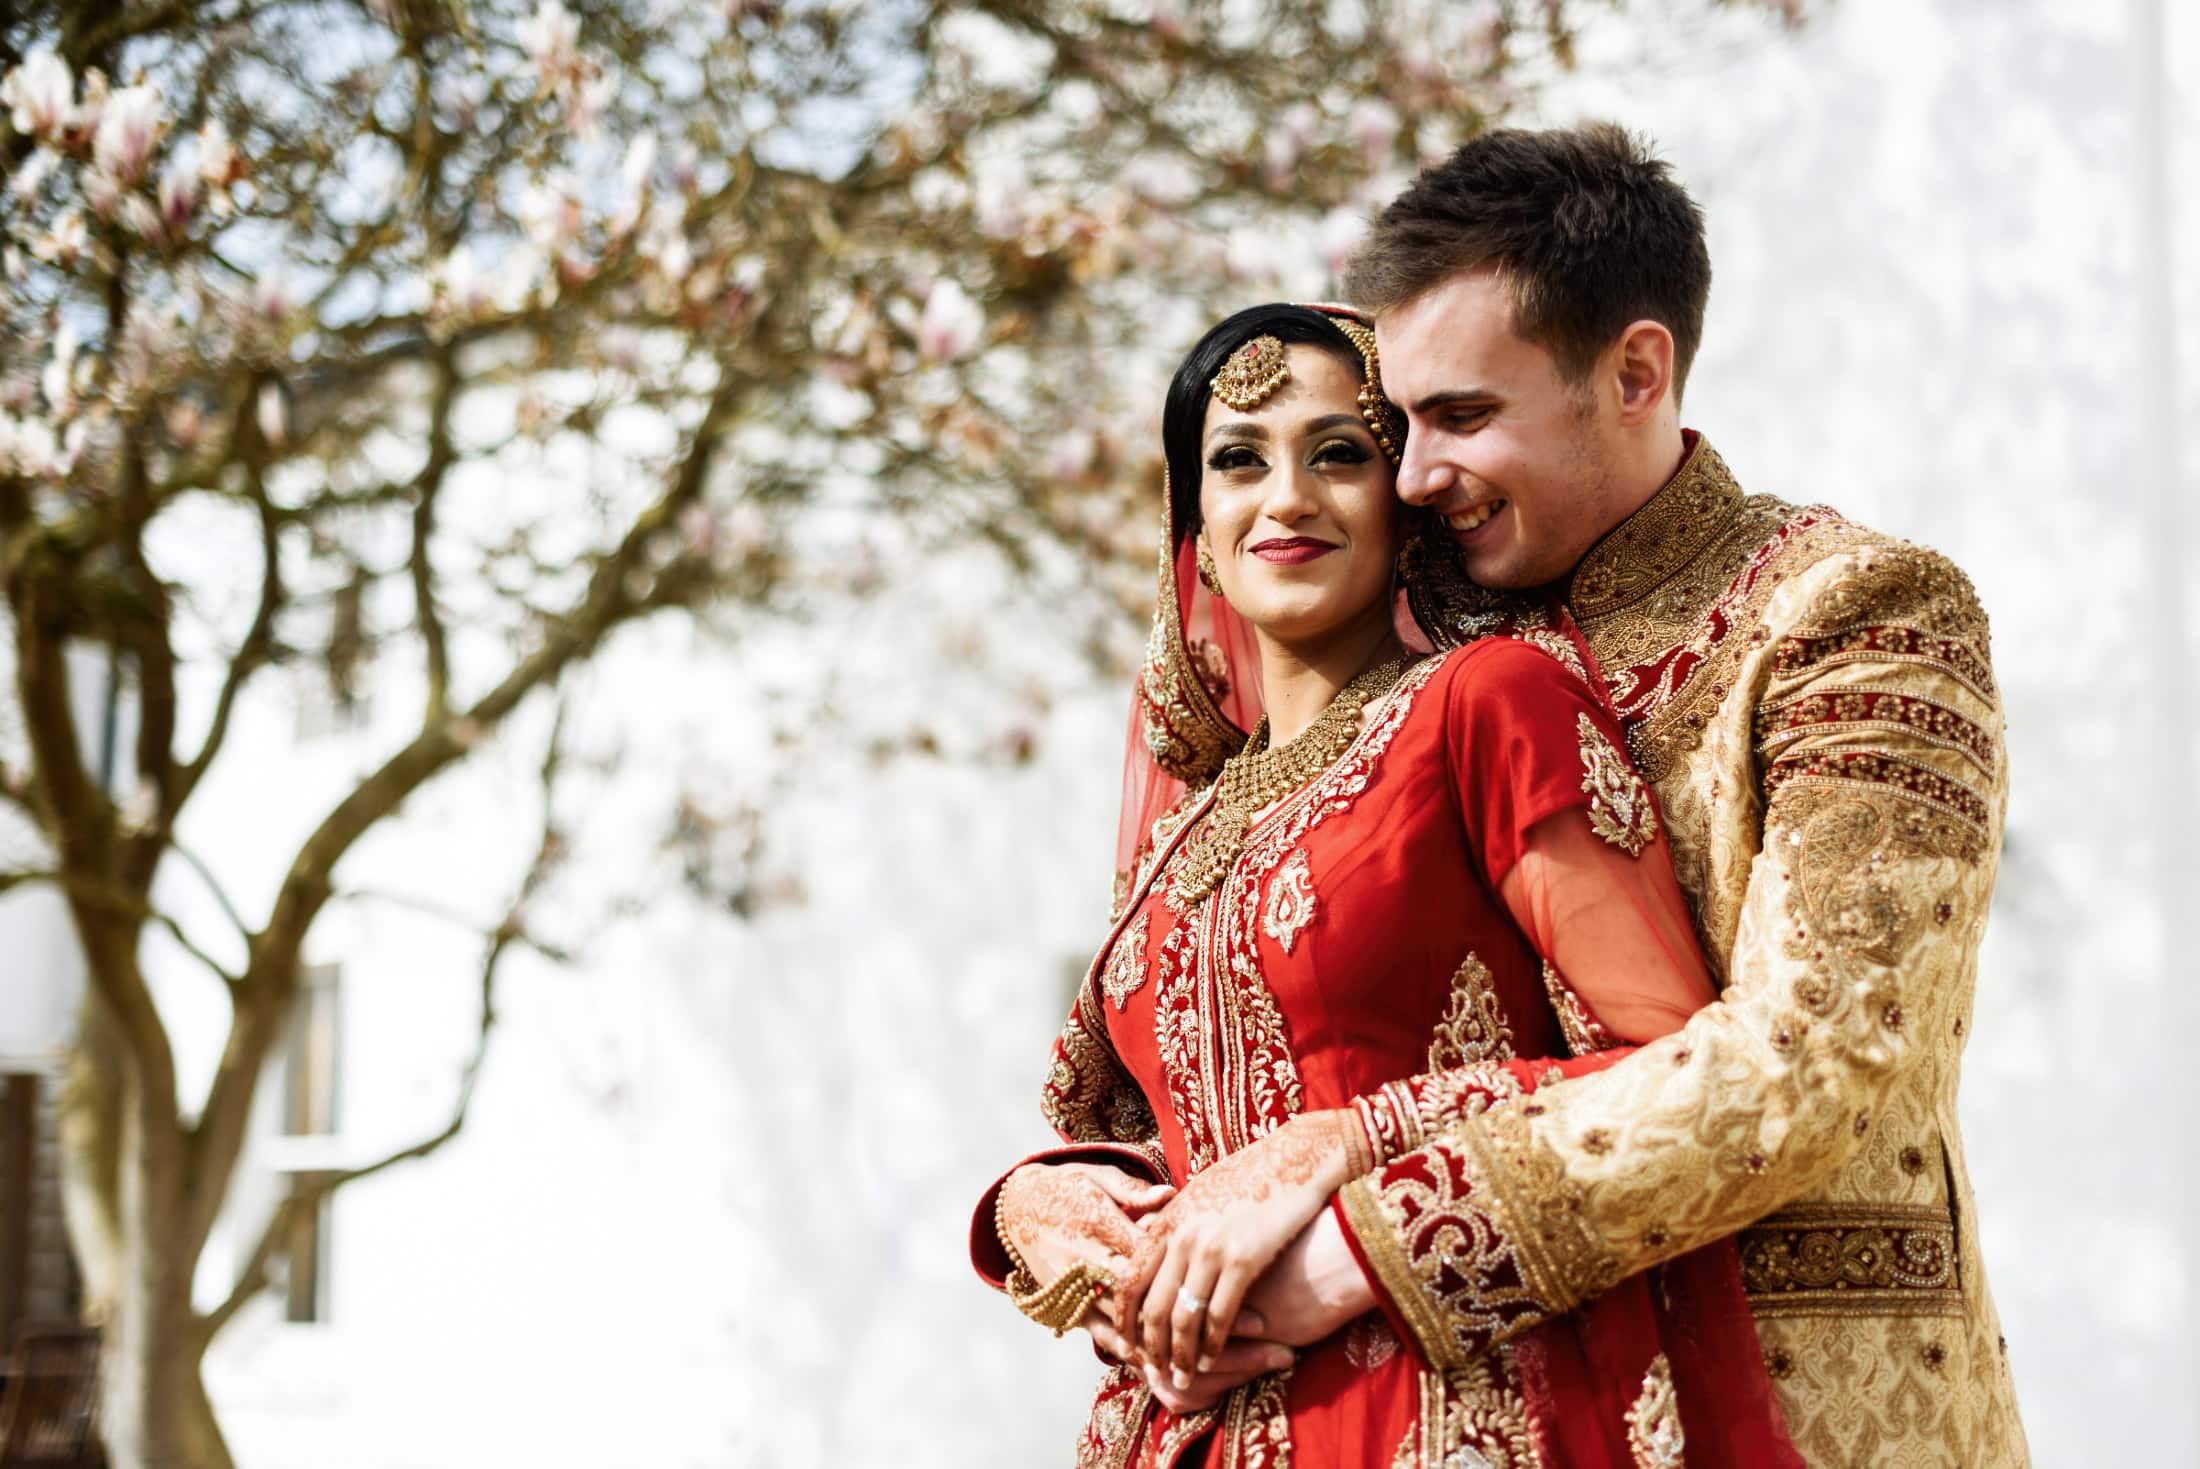 Bride and groom Indian wedding outfits at Warwick House